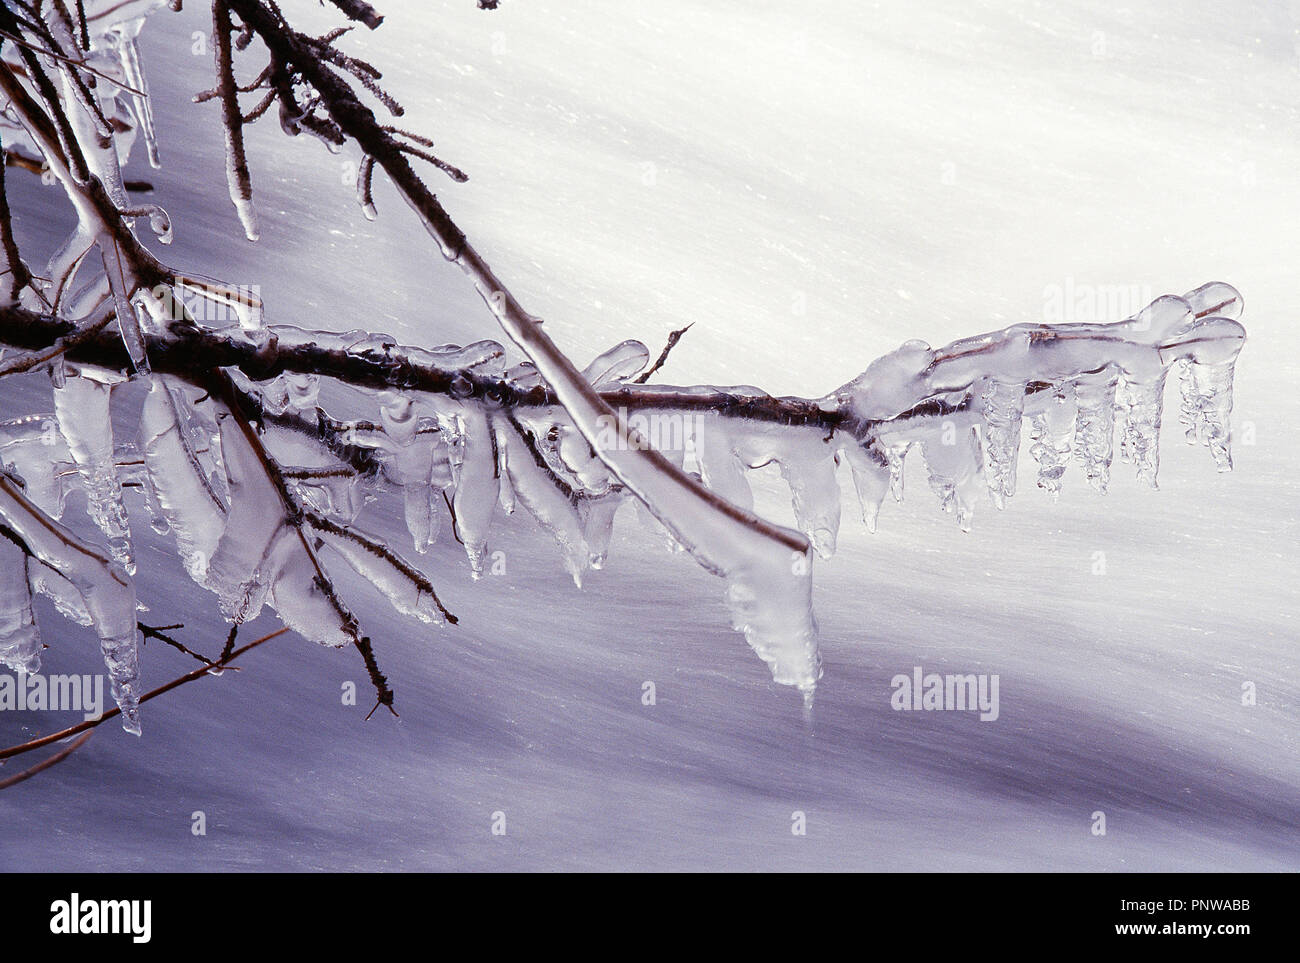 USA. Wyoming. Der Yellowstone National Park im Winter. Eis bedeckt Baumstrukturzweig. Stockbild